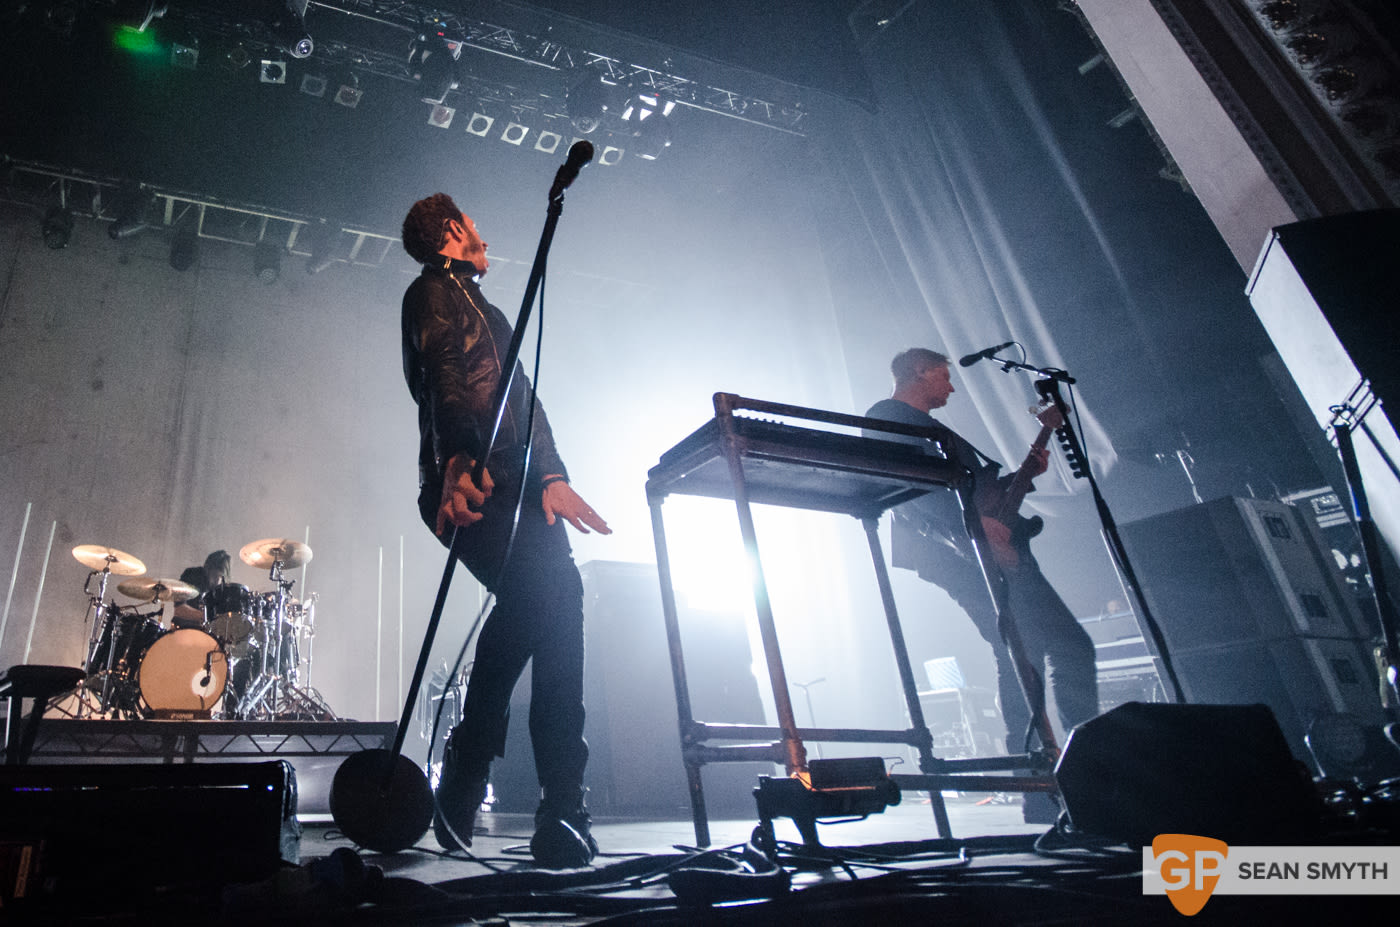 editors-at-the-olympia-theatre-by-sean-smyth-10-10-15-13-of-28_22100460471_o